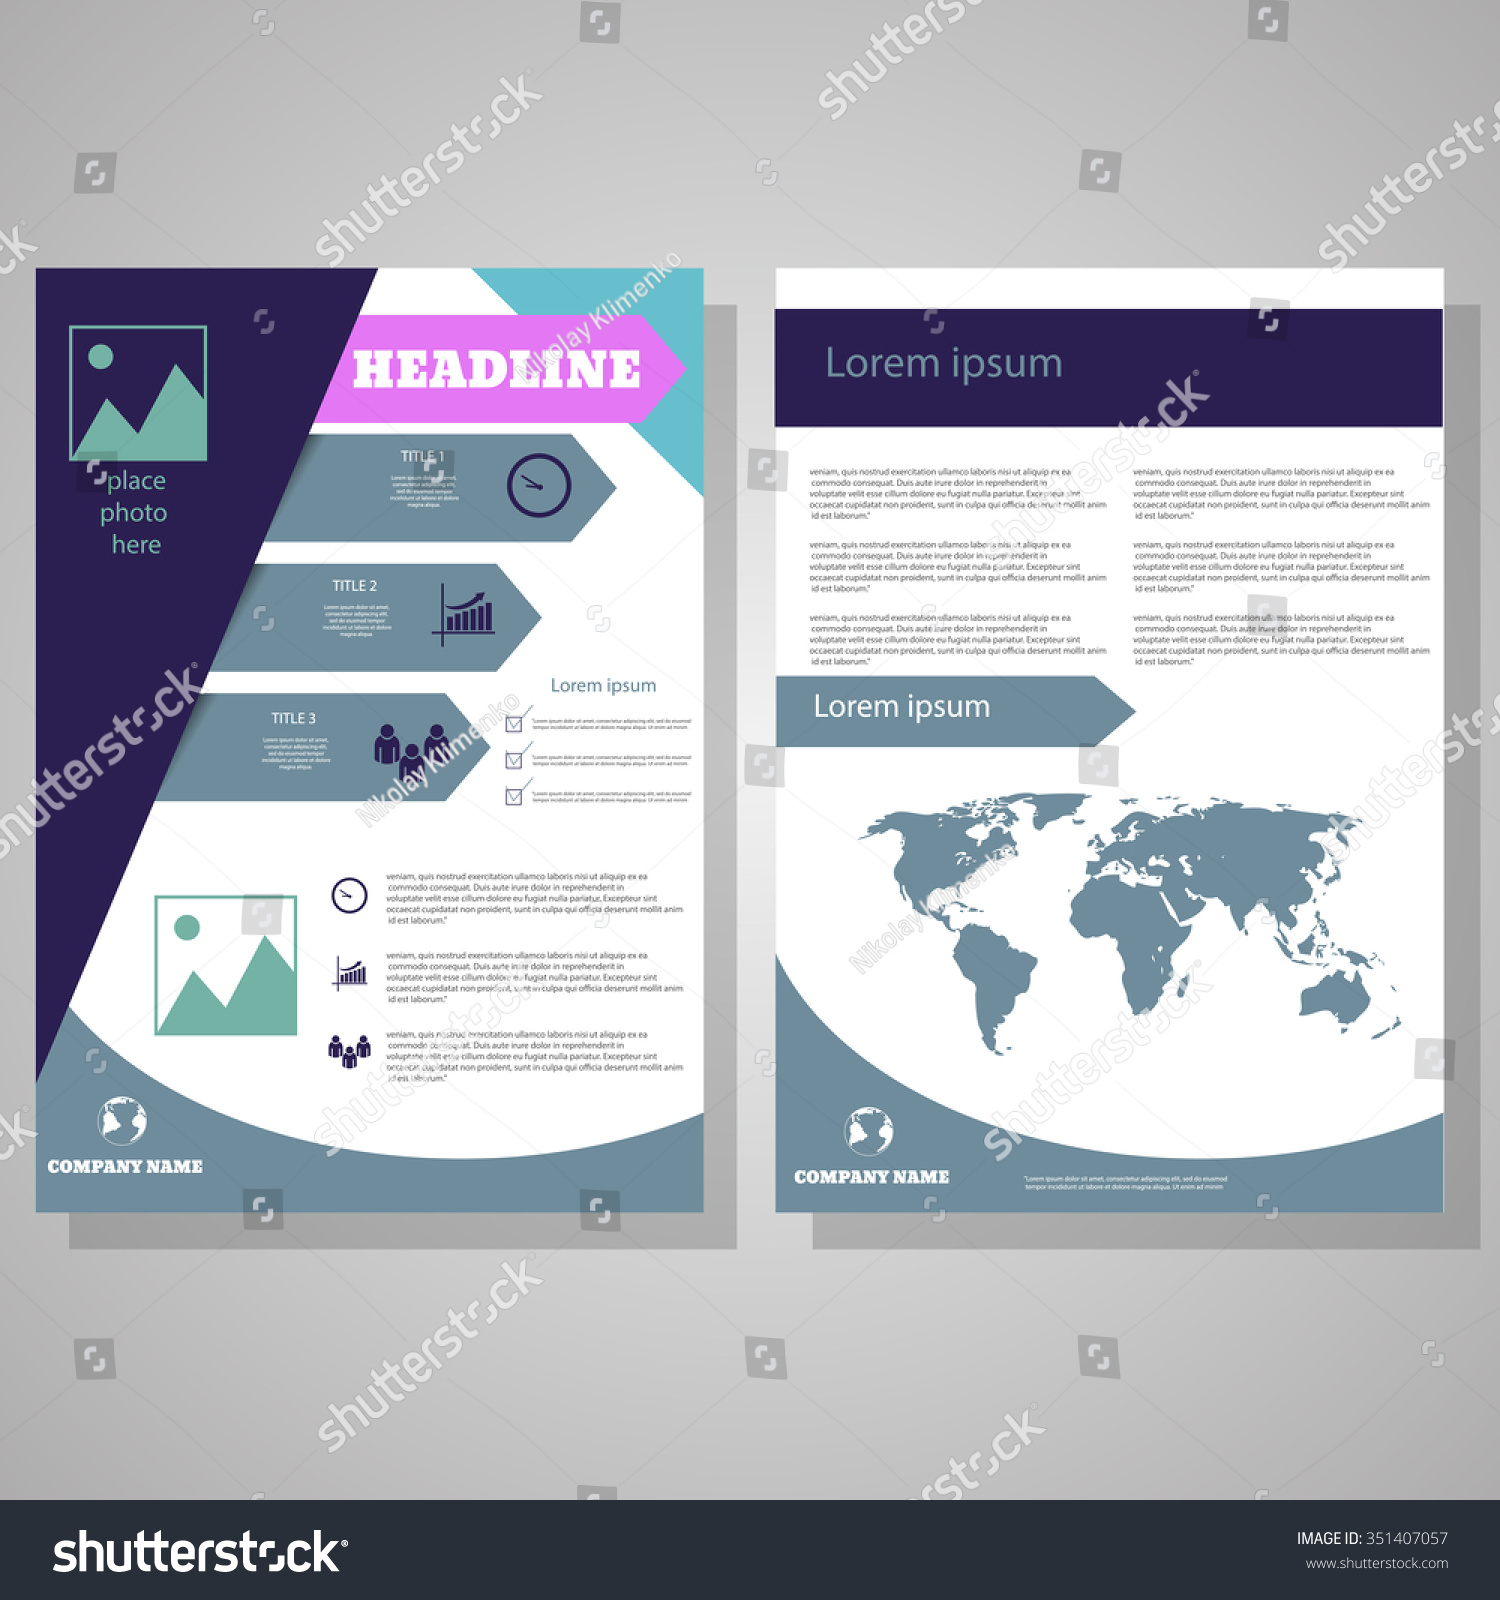 Famous 10 Best Resumes Thin 10 Label Template Round 1099 Form Template 13b Porting Templates Old 16 Team Bracket Template Coloured1st Birthday Invite Templates Brochure Design Layout Template Size A4 Stock Vector 351407057 ..